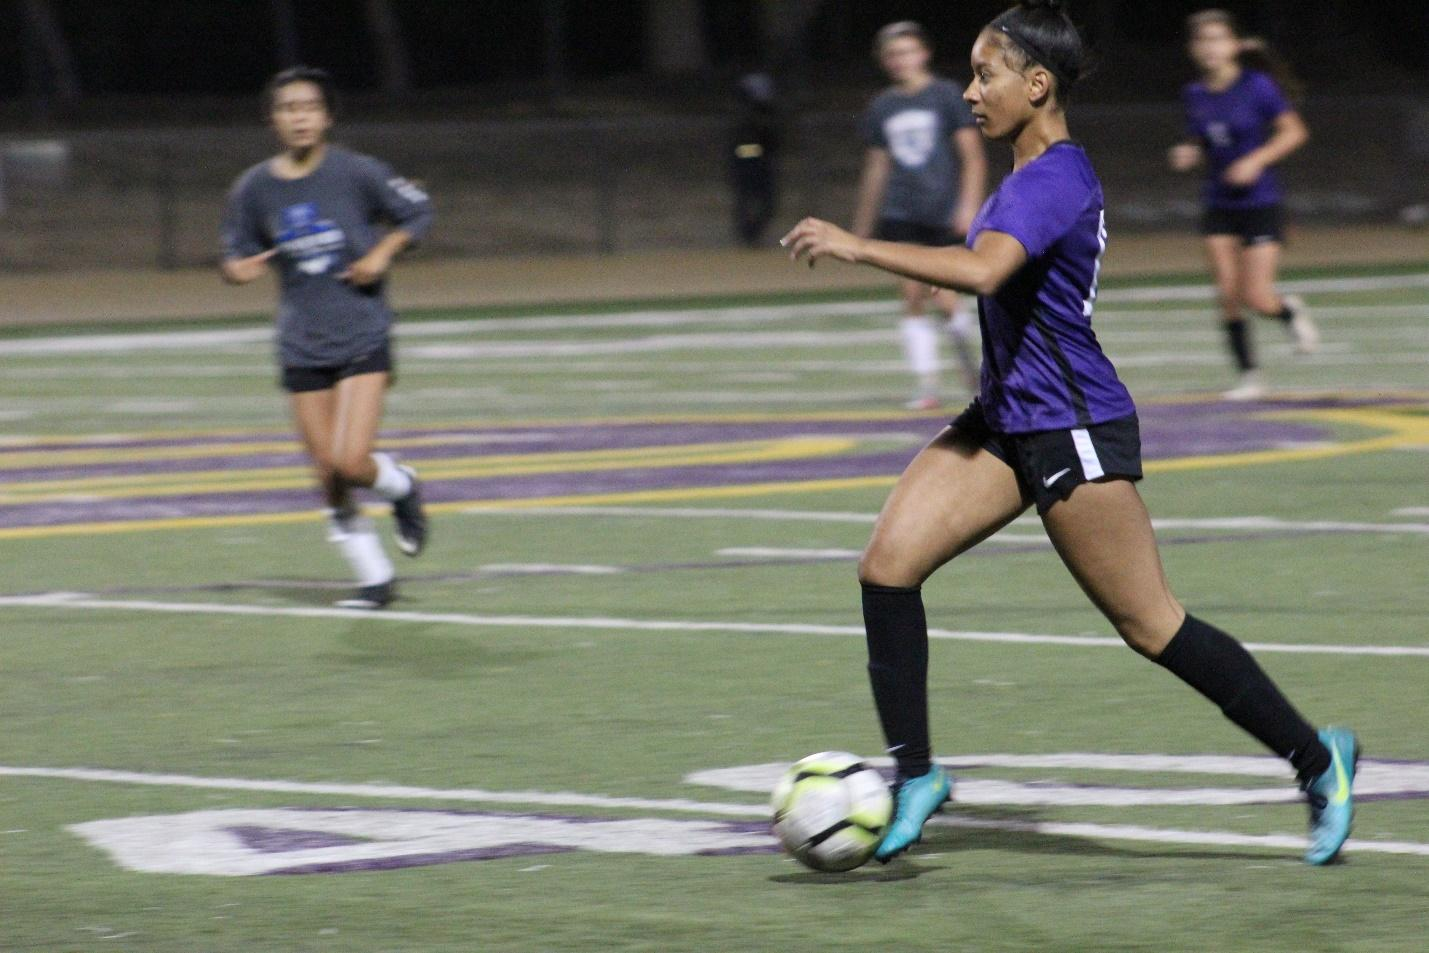 Senior Jordyn Beaulieu looks to make a pass during a DBHS scrimmage against Diamond Ranch.